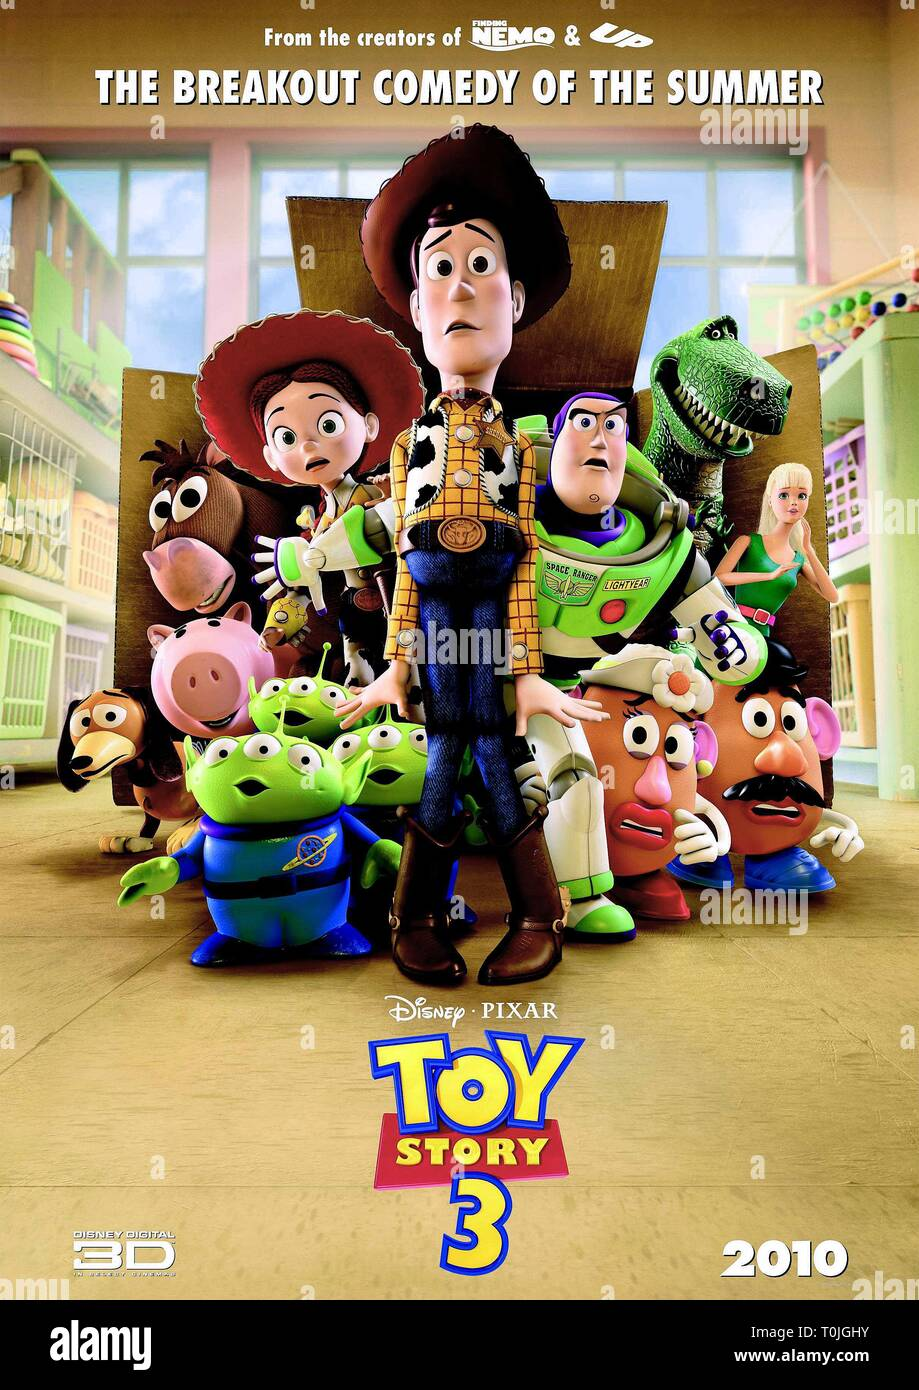 TOY STORY 3, SLINKY, BULLSEYE, HAMM THE PIGGY BANK, JESSIE, ALIENS, WOODY, BUZZ LIGHTYEAR, MRS. POTATO HEAD, REX, MR. POTATO HEAD , BARBIE, 2010 - Stock Image